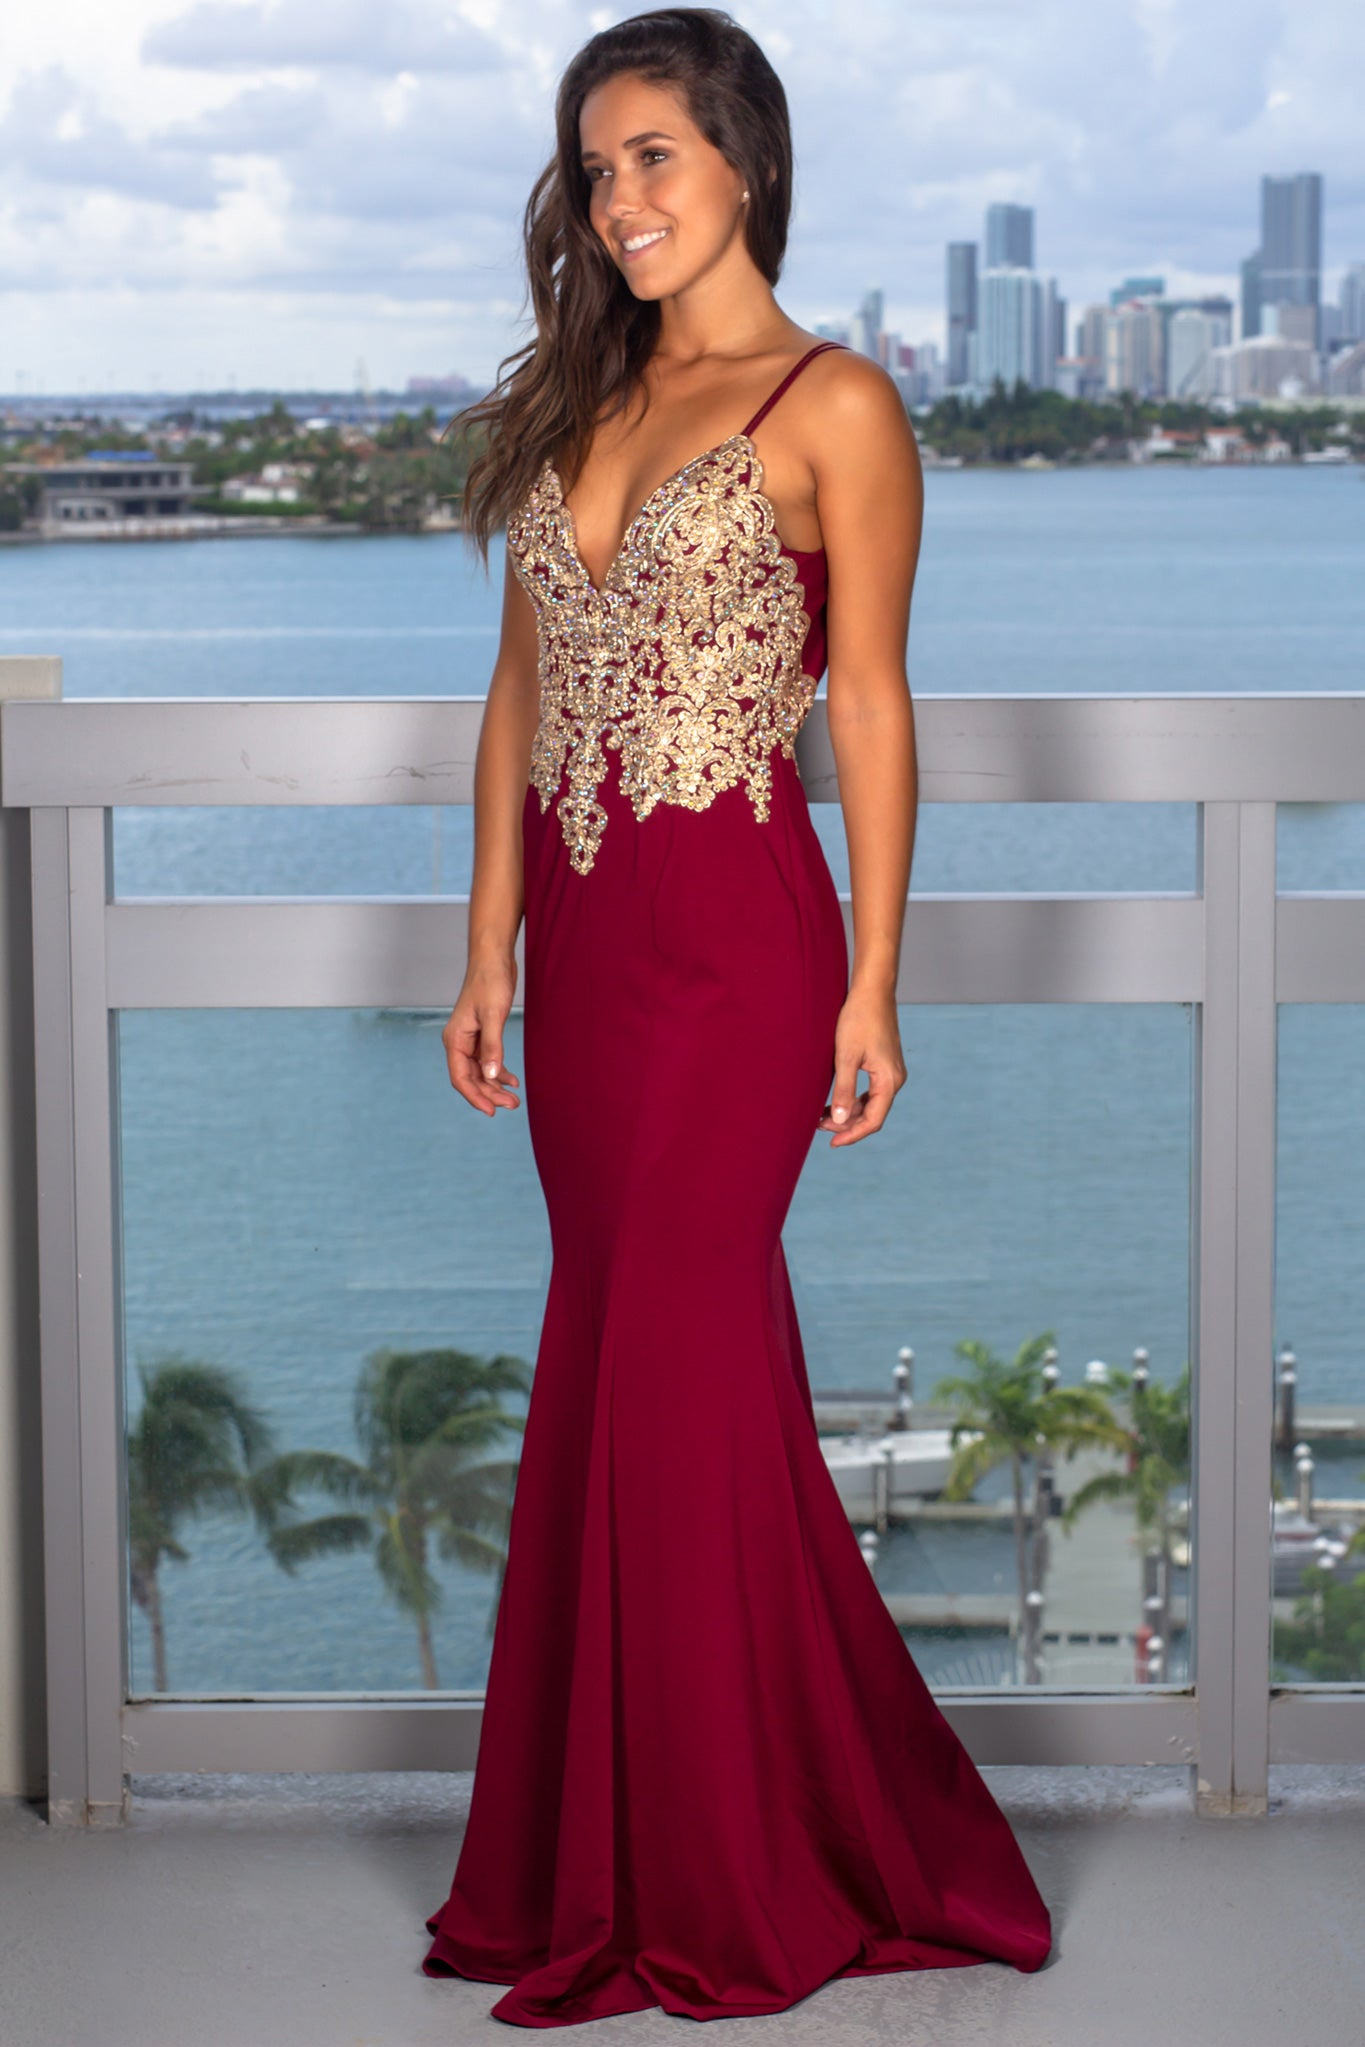 Red Maxi Dress with Jeweled Top